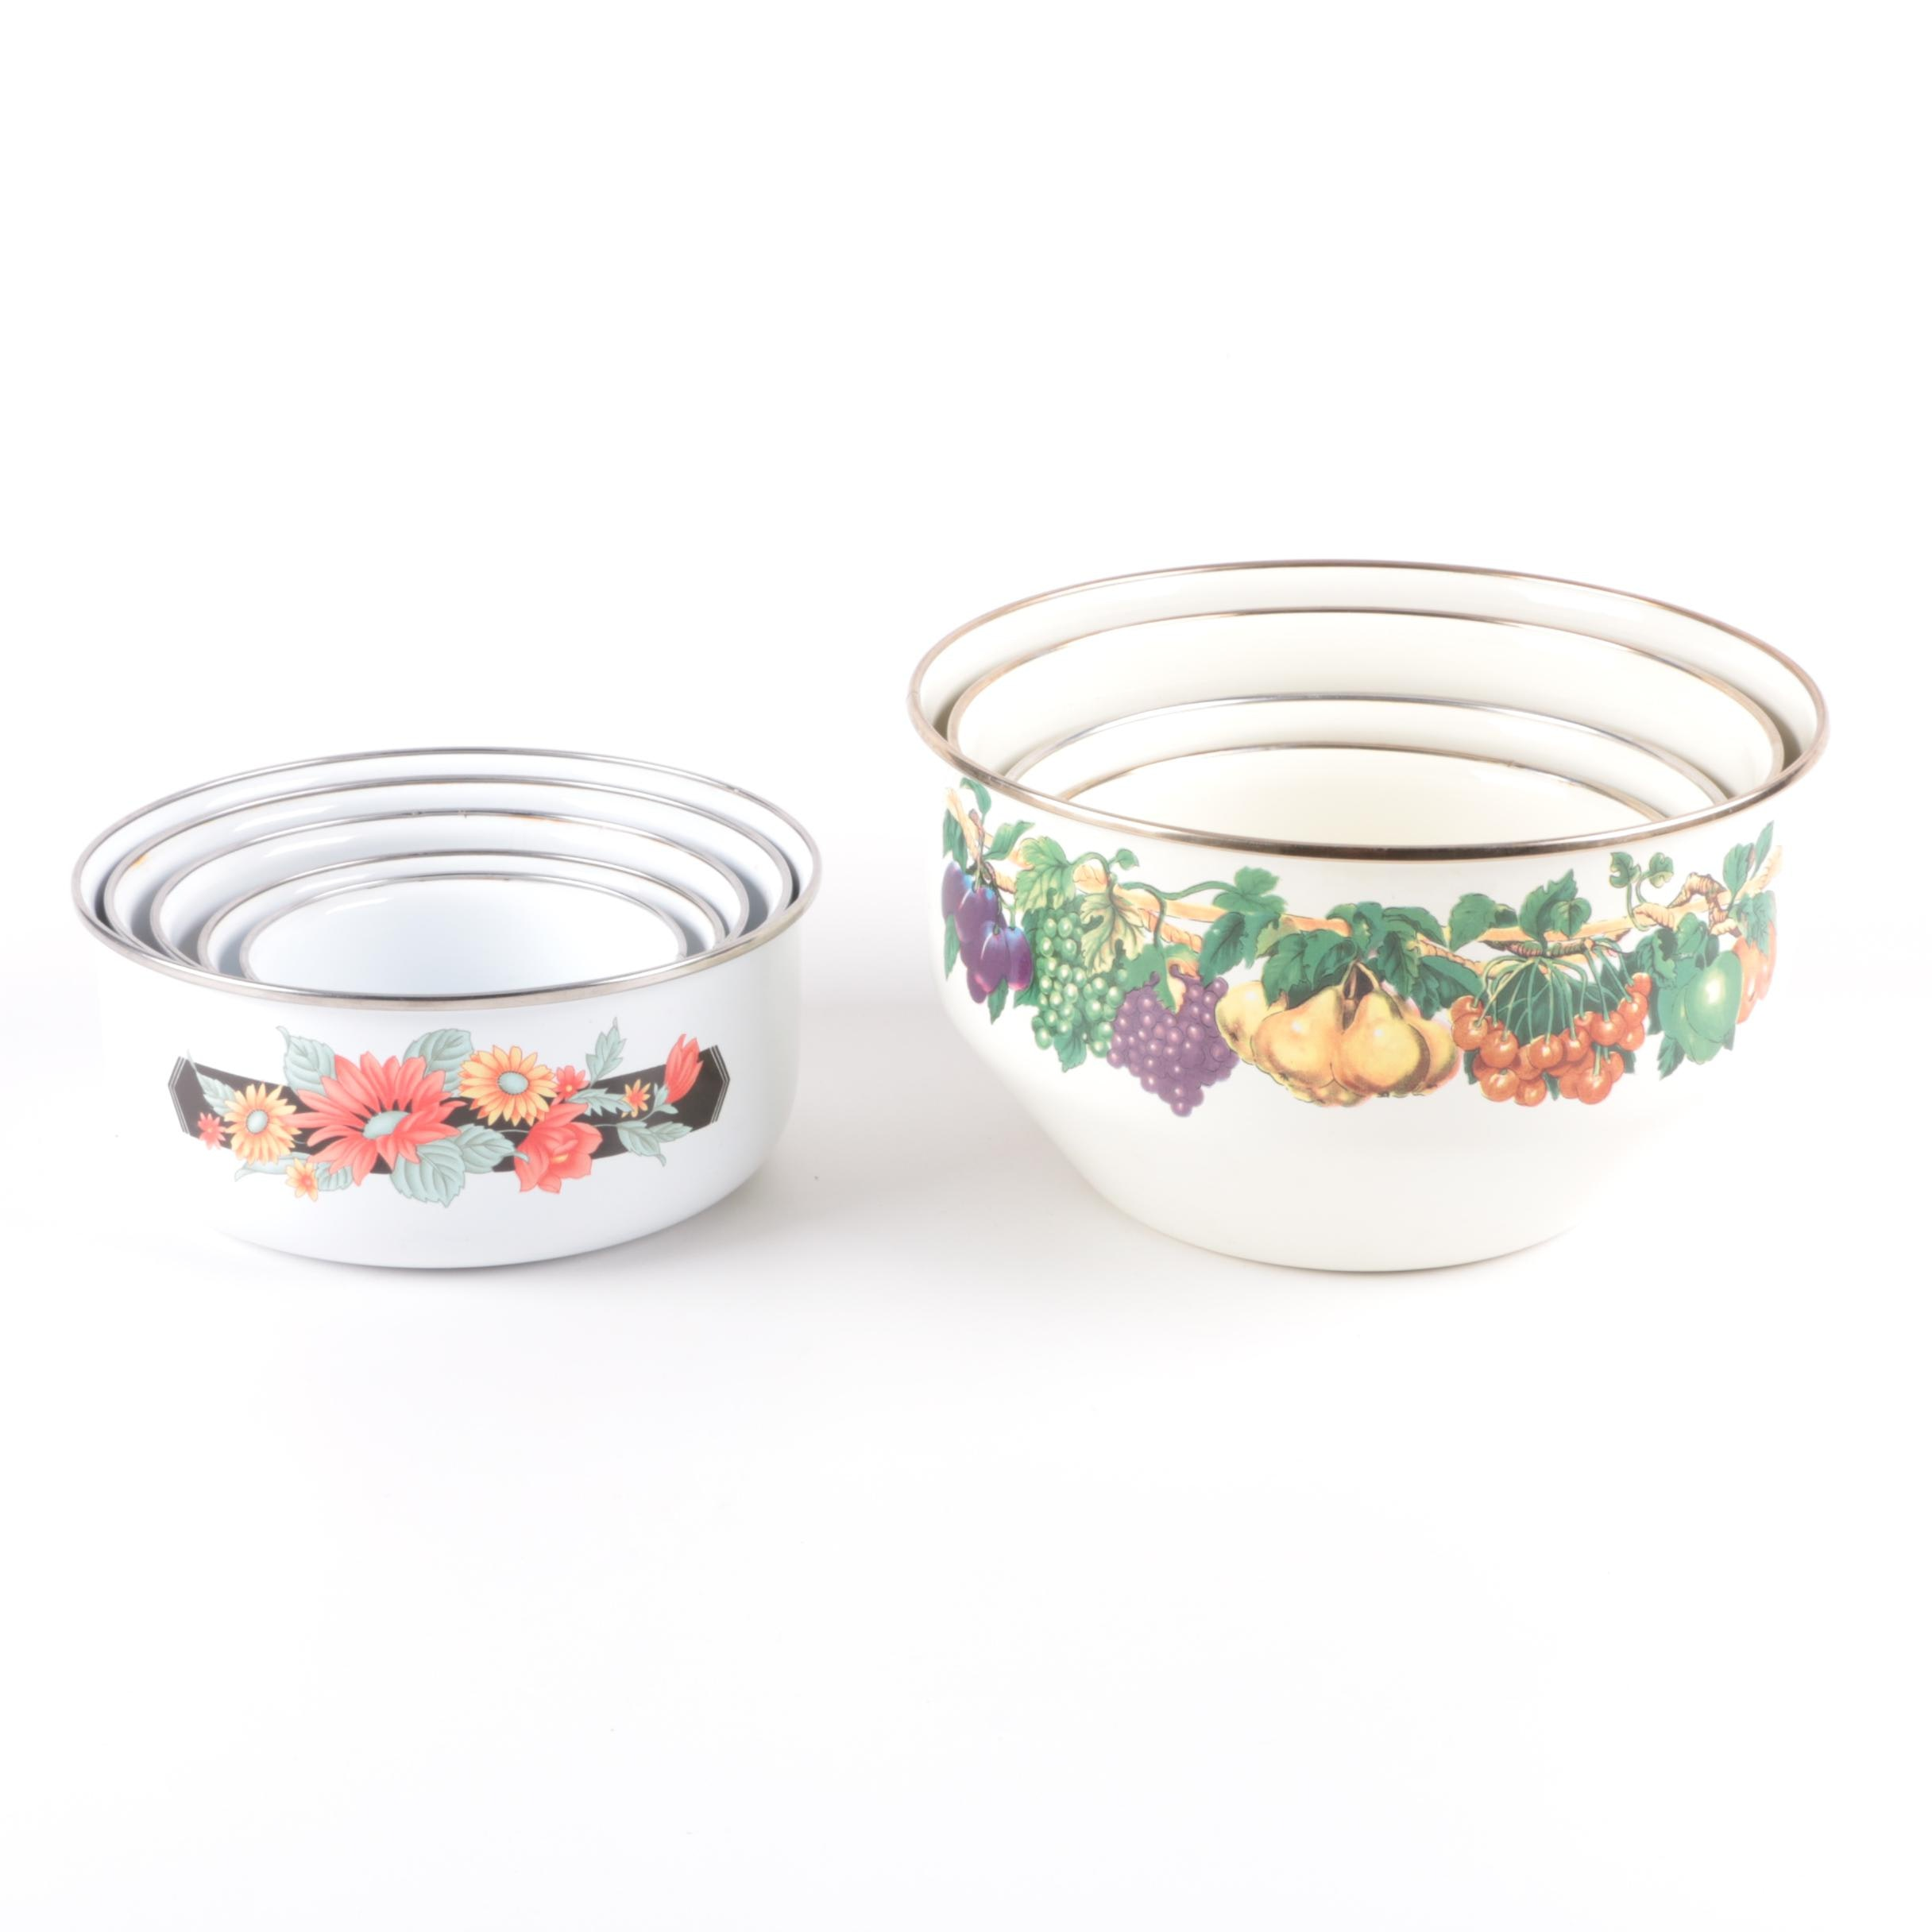 Enamelware Including Tabletops Unlimited Fruit Patterned Mixing Bowls